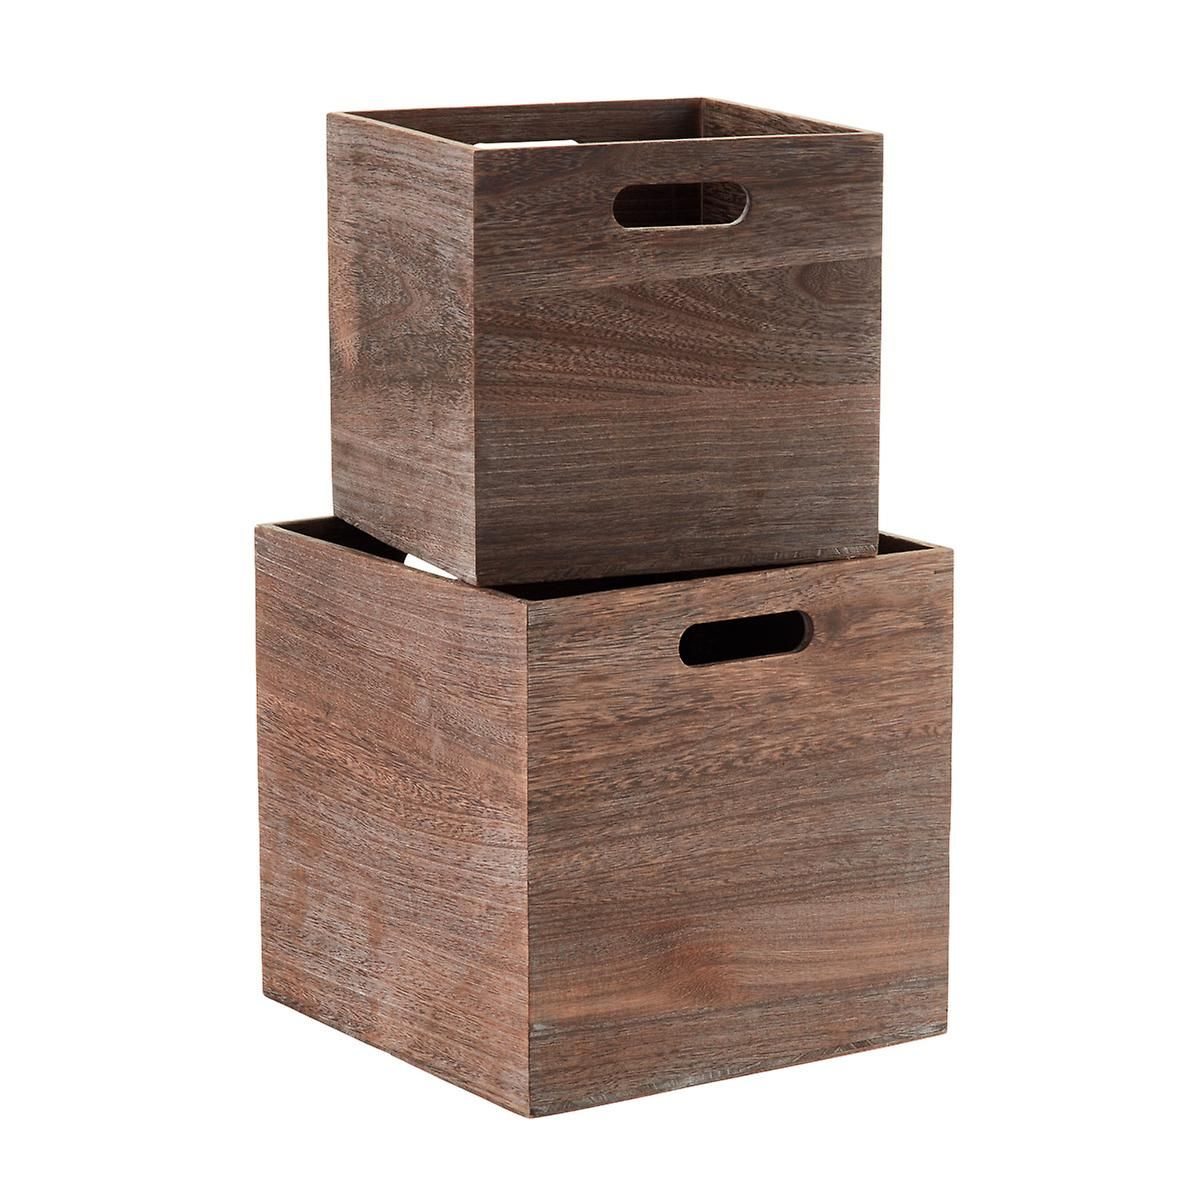 Feathergrain Wooden Storage Cubes With Handles Cube Storage Toy Storage Cubes Wooden Storage Bins